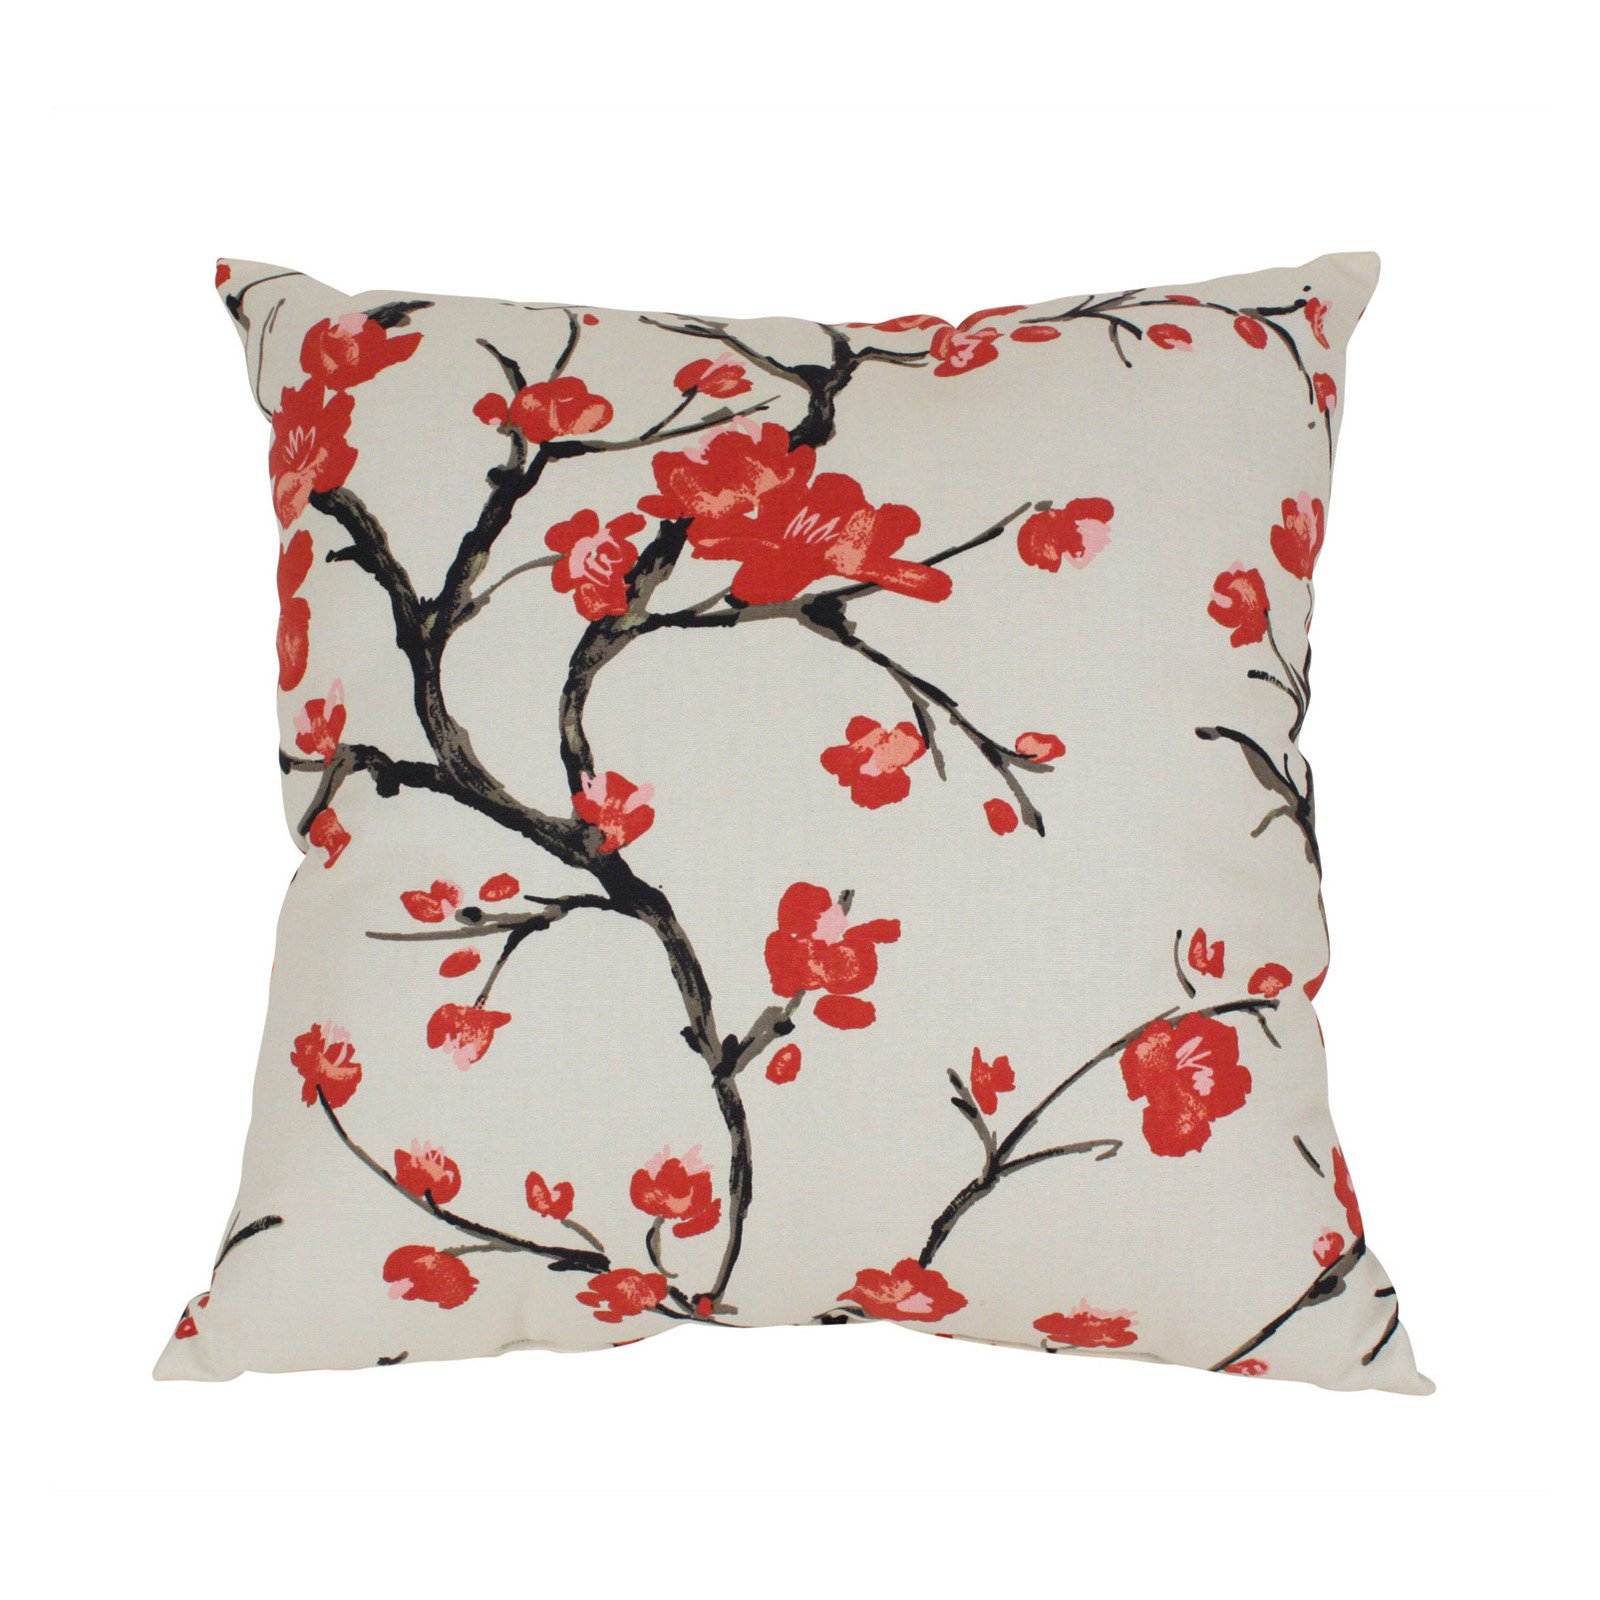 Pillow Perfect Decorative Beige and Red Flowering Branch Square Toss Pillow by Pillow Perfect